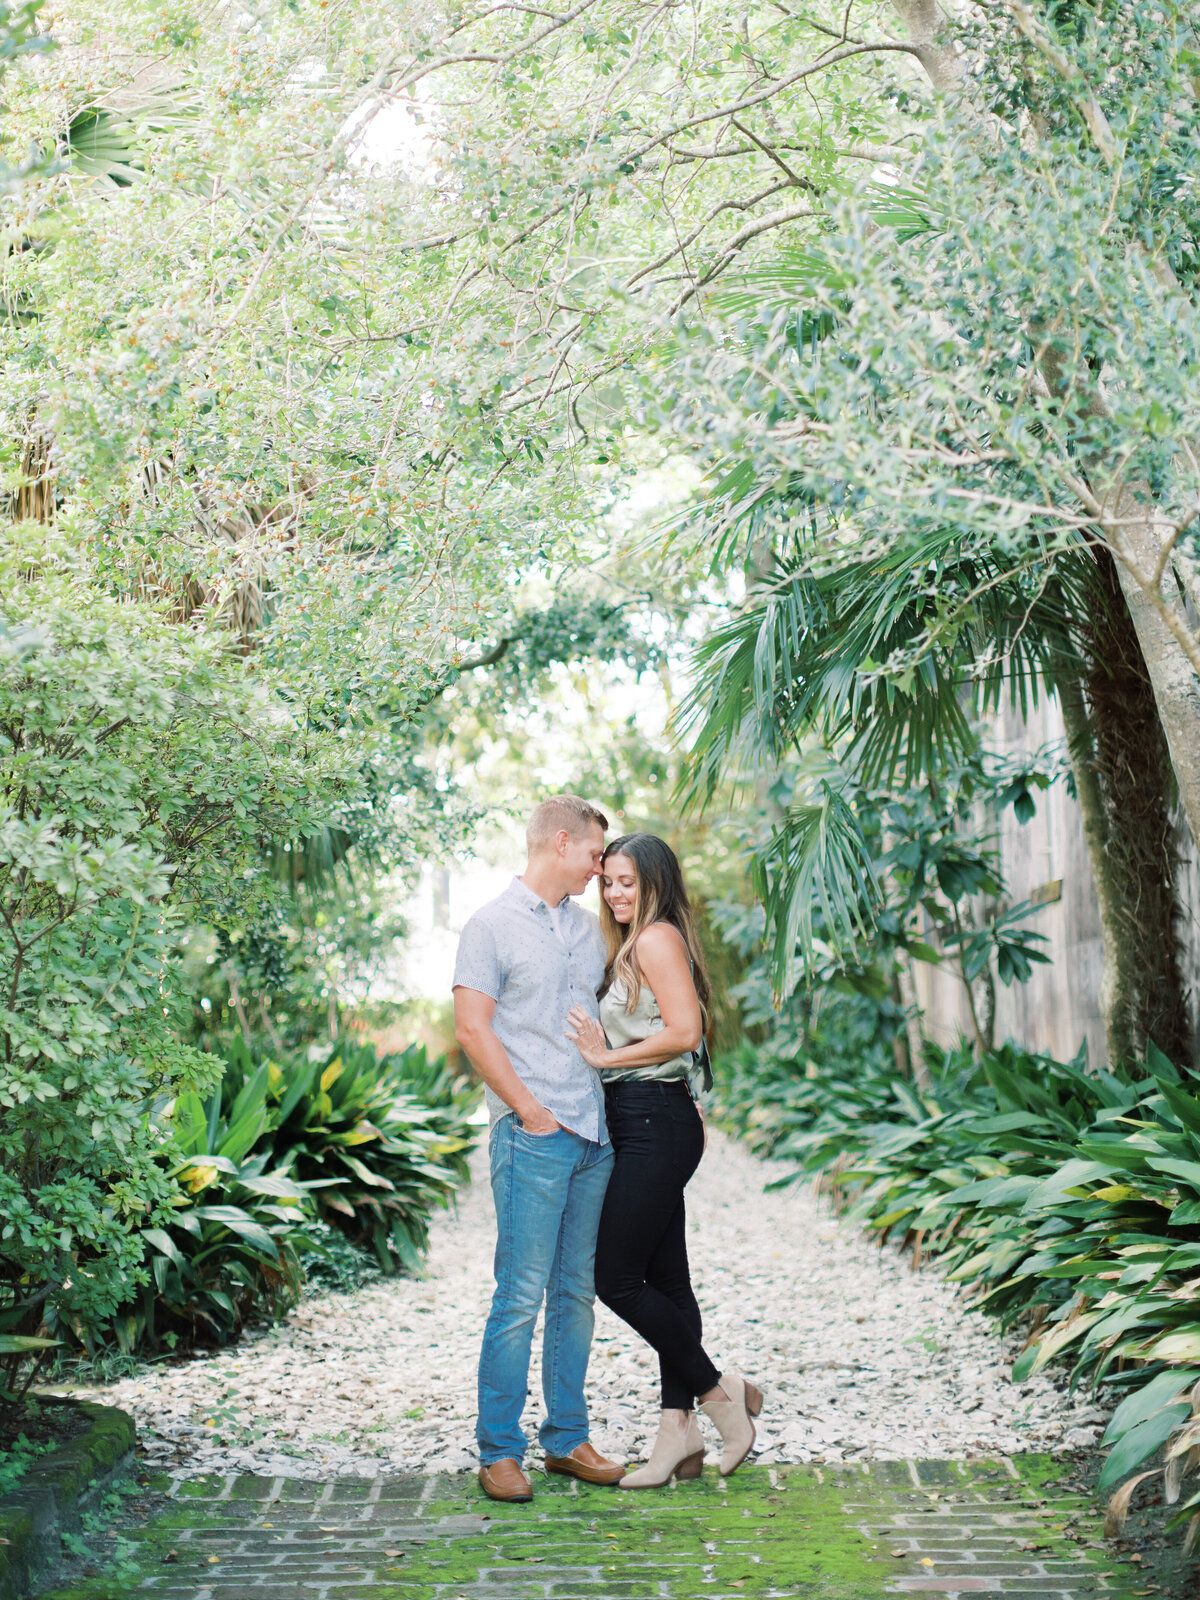 Charleston Wedding Photographer | Savannah Wedding Photographer | Beaufort Wedding Photographer | Hilton Head Island Wedding Photographer | San Luis Obispo Wedding Photographer | Santa Barbara Wedding Photographer _ ARP -1